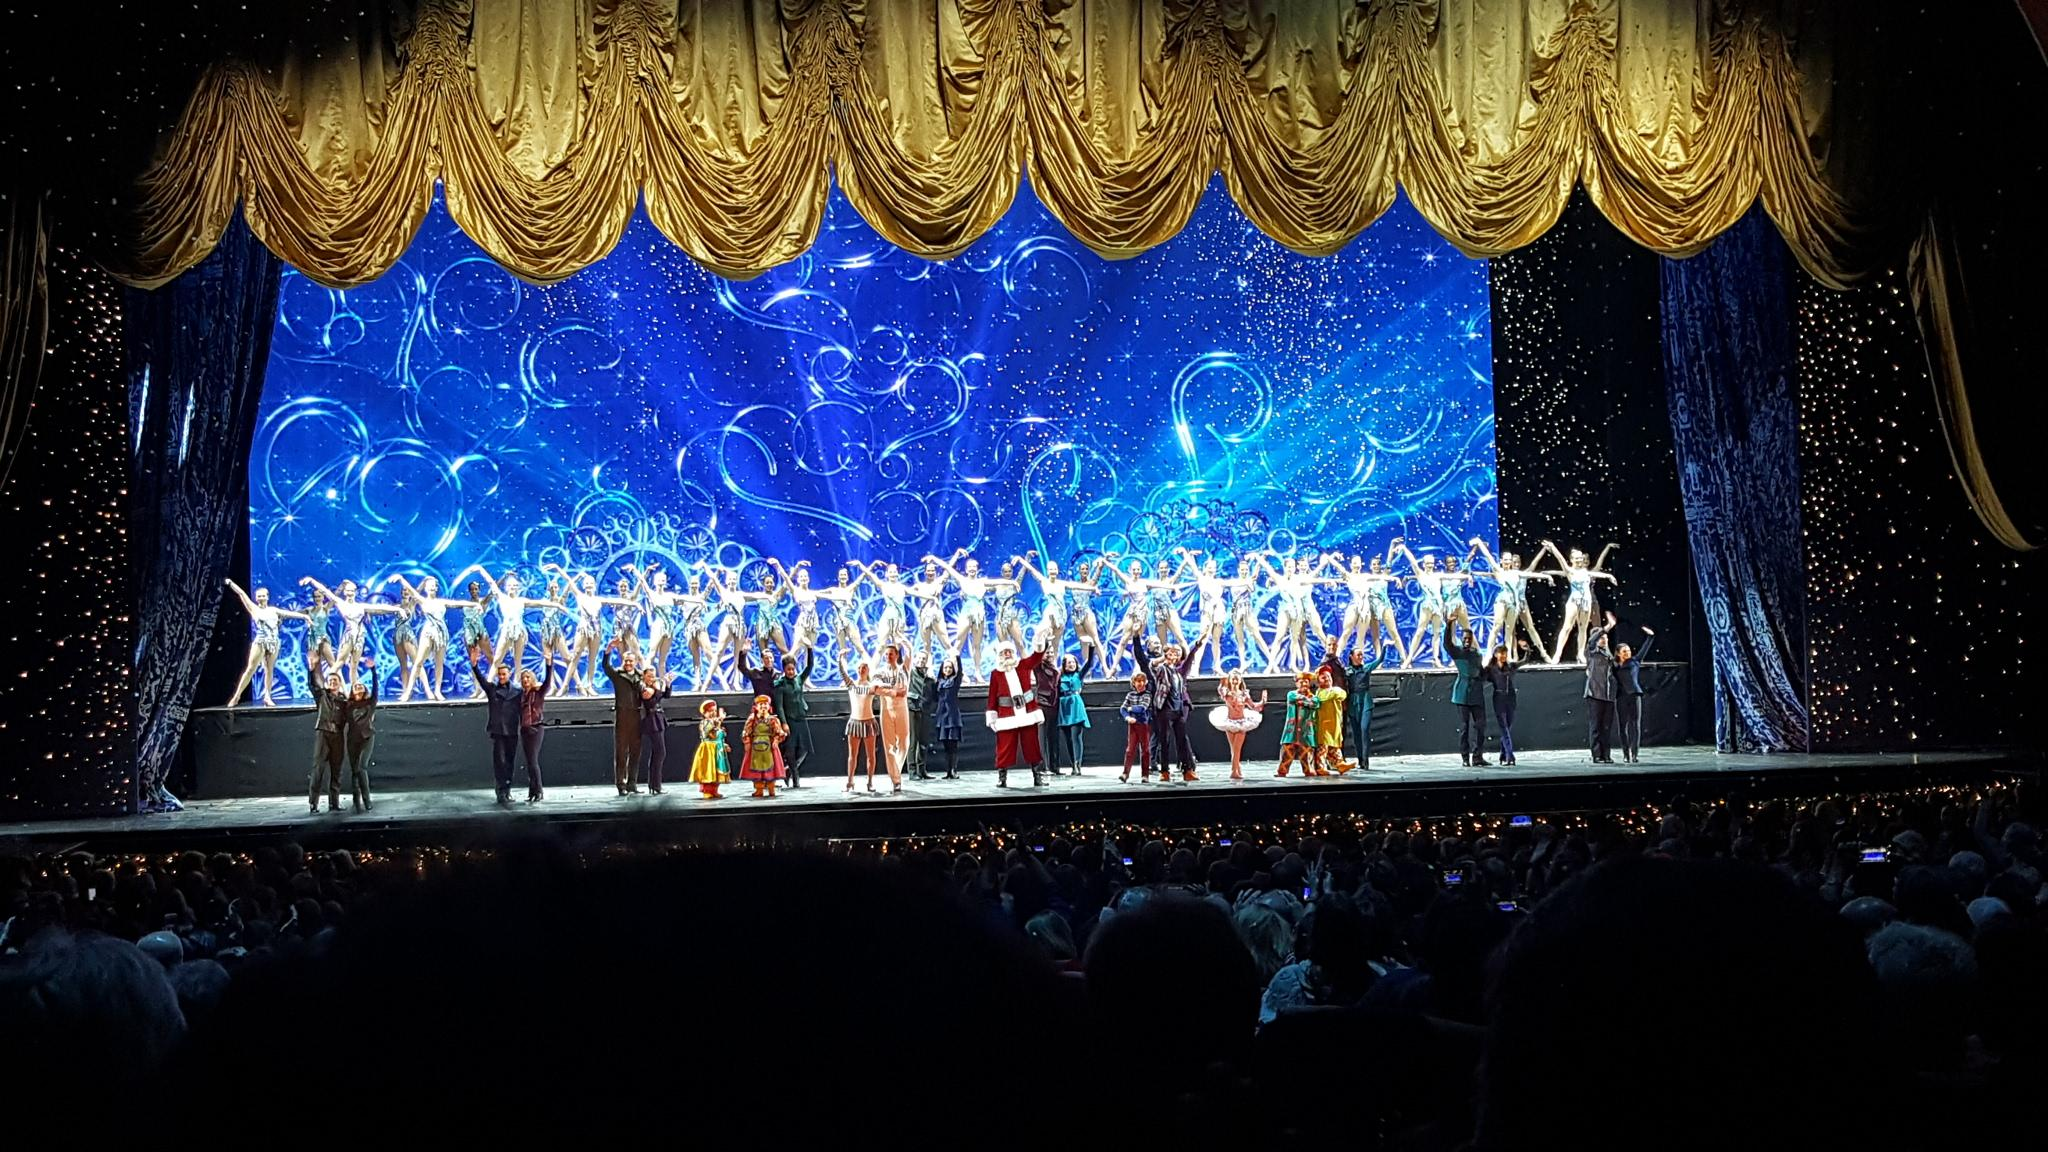 Radio City Music Hall Section Orchestra 5 Row G Seat 502